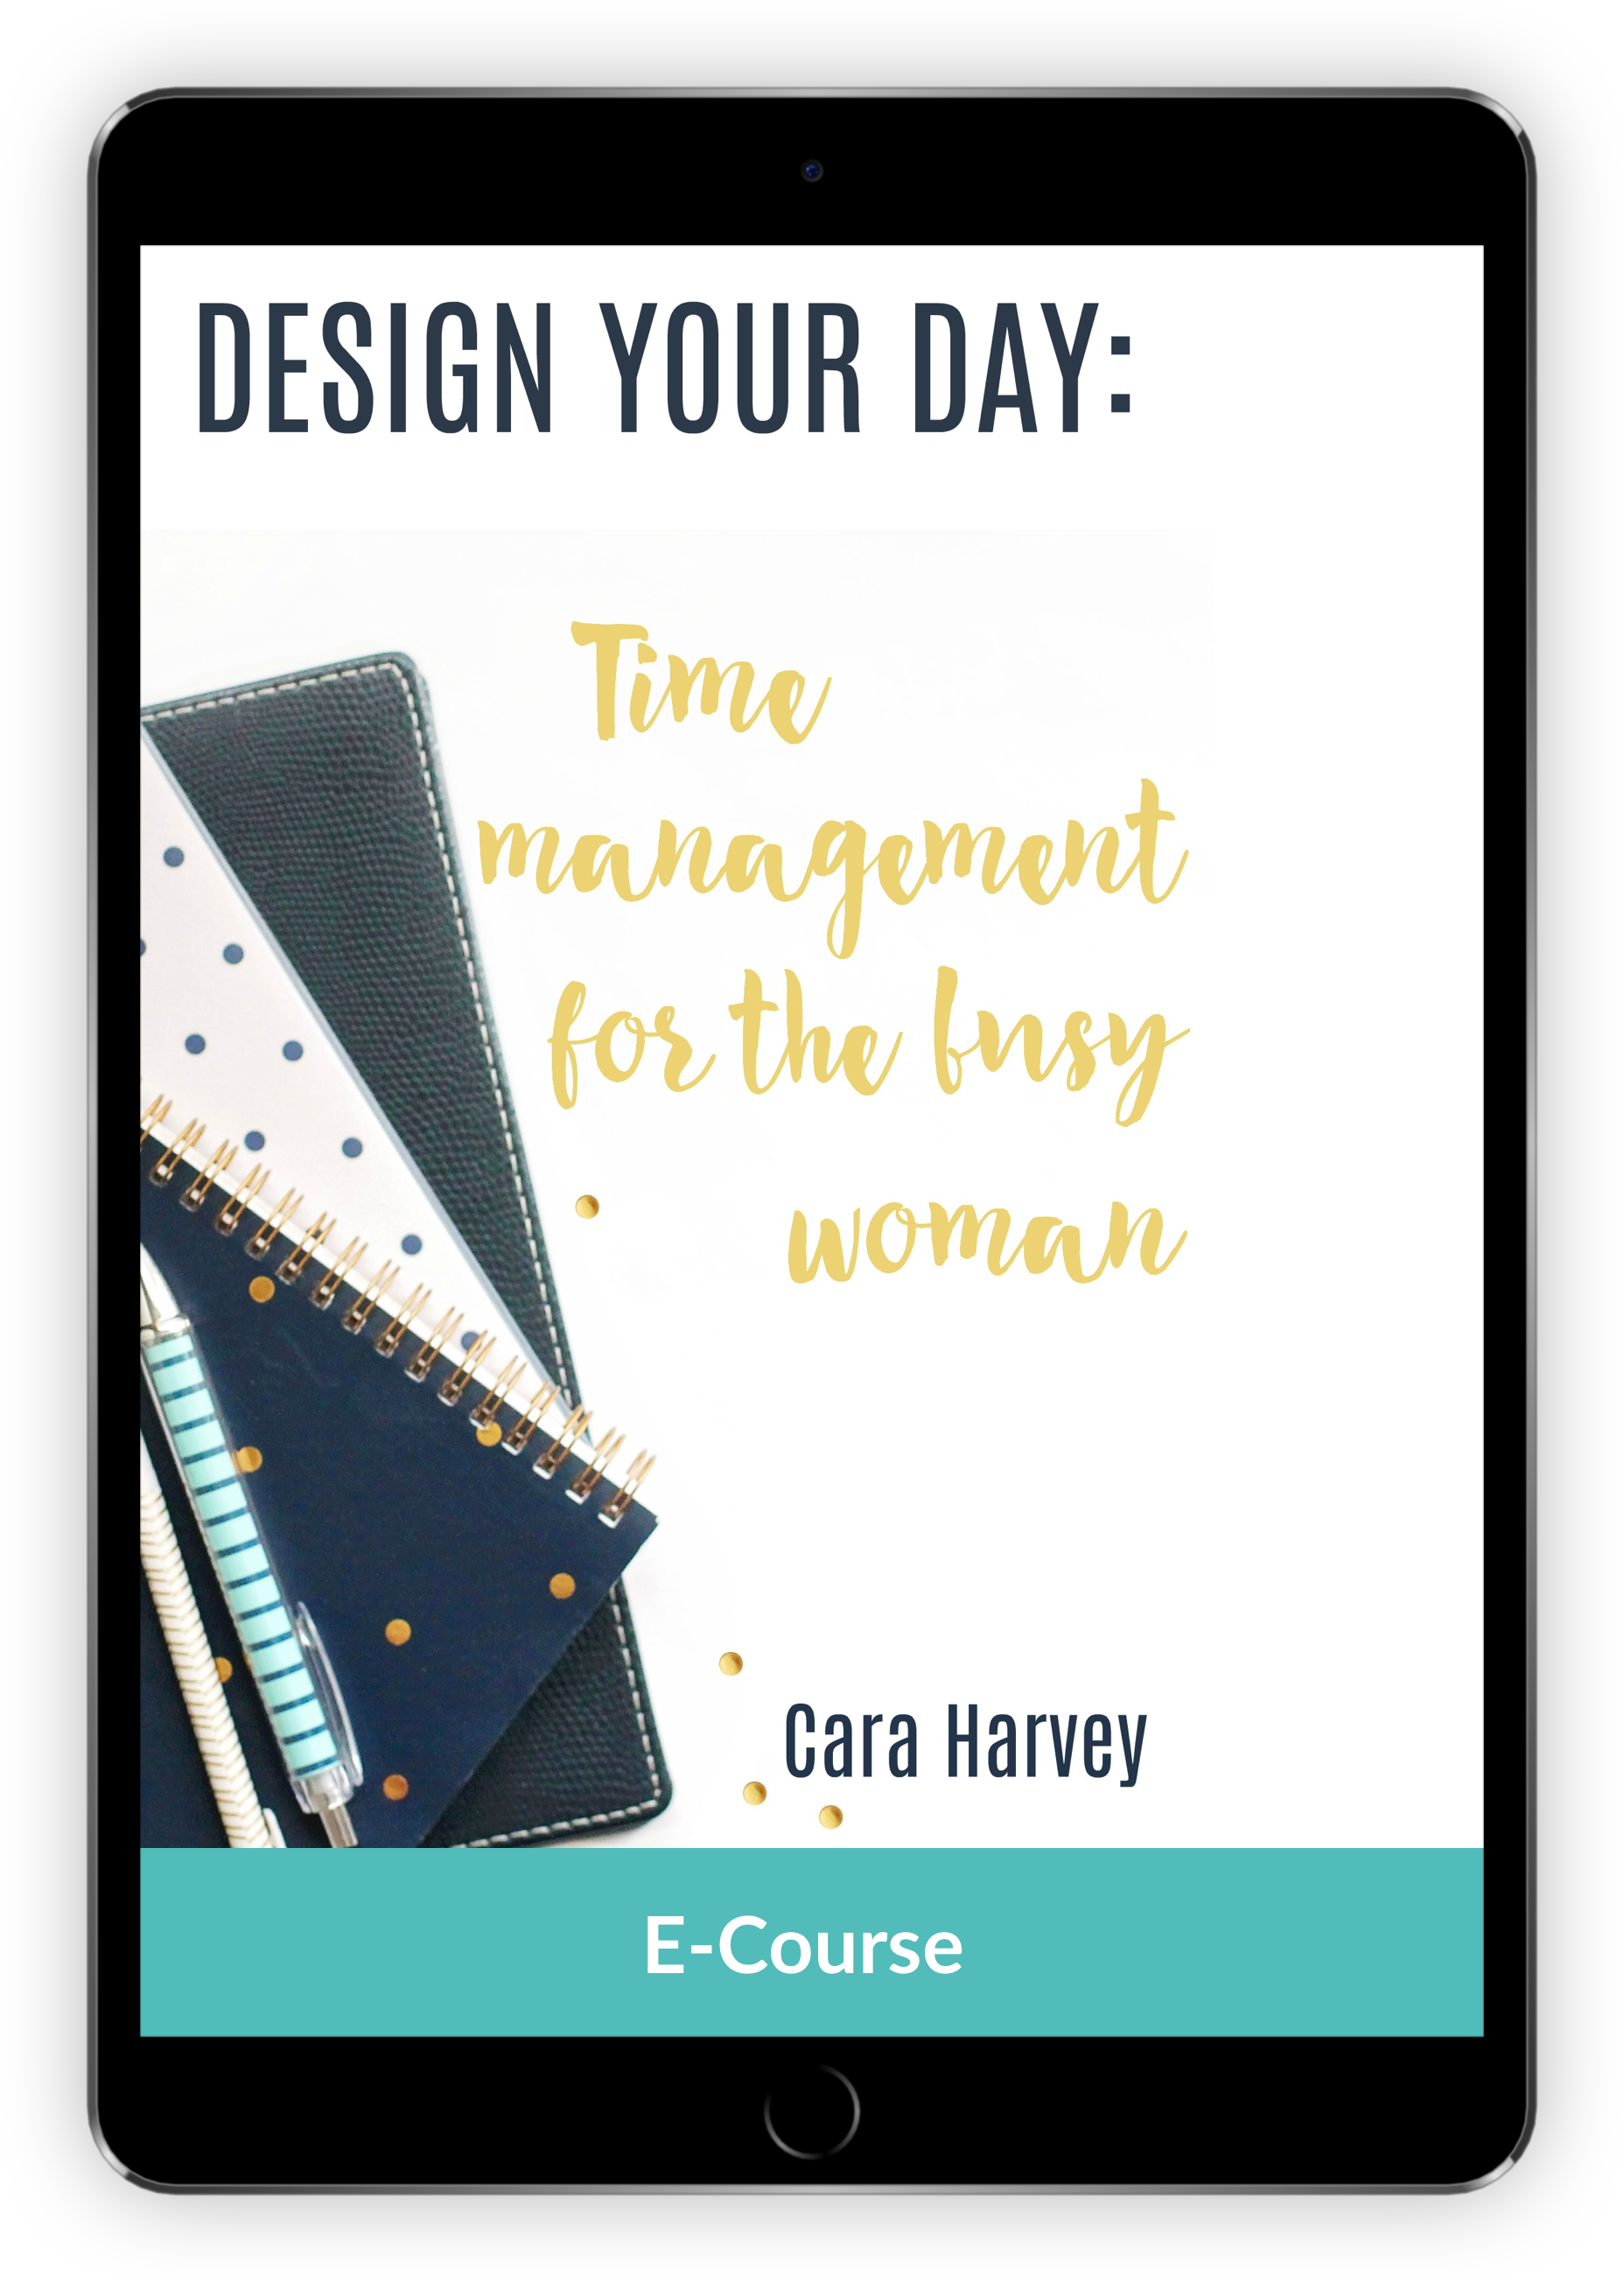 Design Your Day Mockup V2 - Copy.png